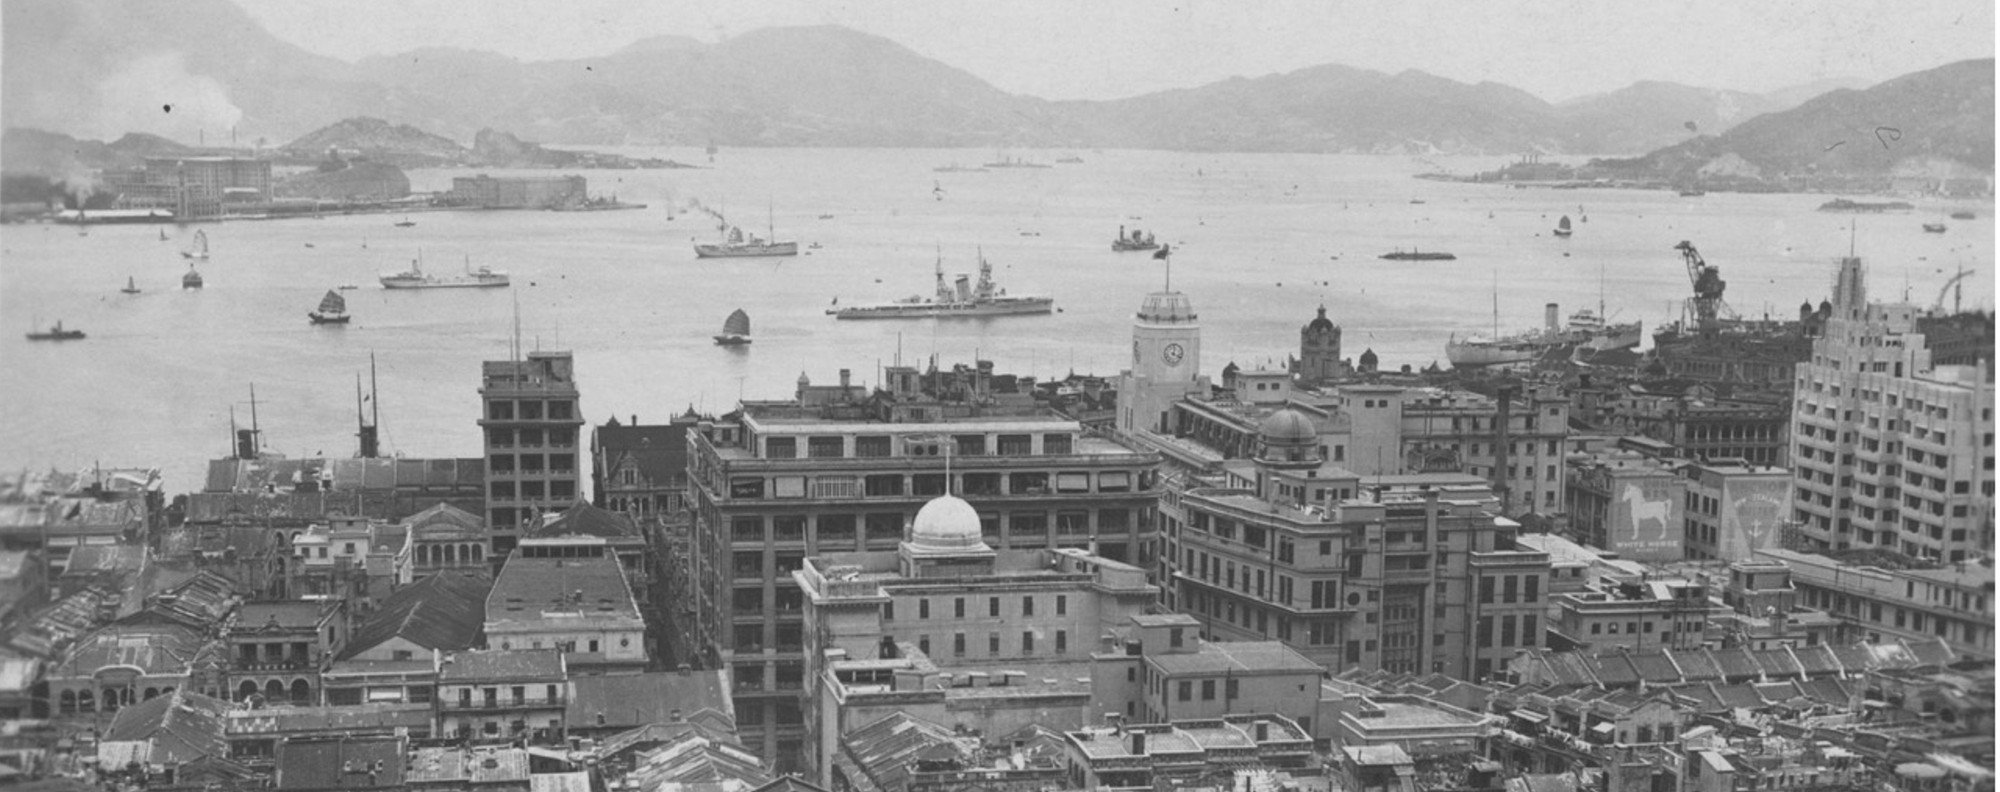 """an examination of the essay on the battle of hong kong This guide was jointly prepared by the hong kong examinations authority and  the english  structure of the writing (mainly relevant to analytical essays)  draw students'  settle the conflict (""""an unfathomable war"""") the rate at which  land."""